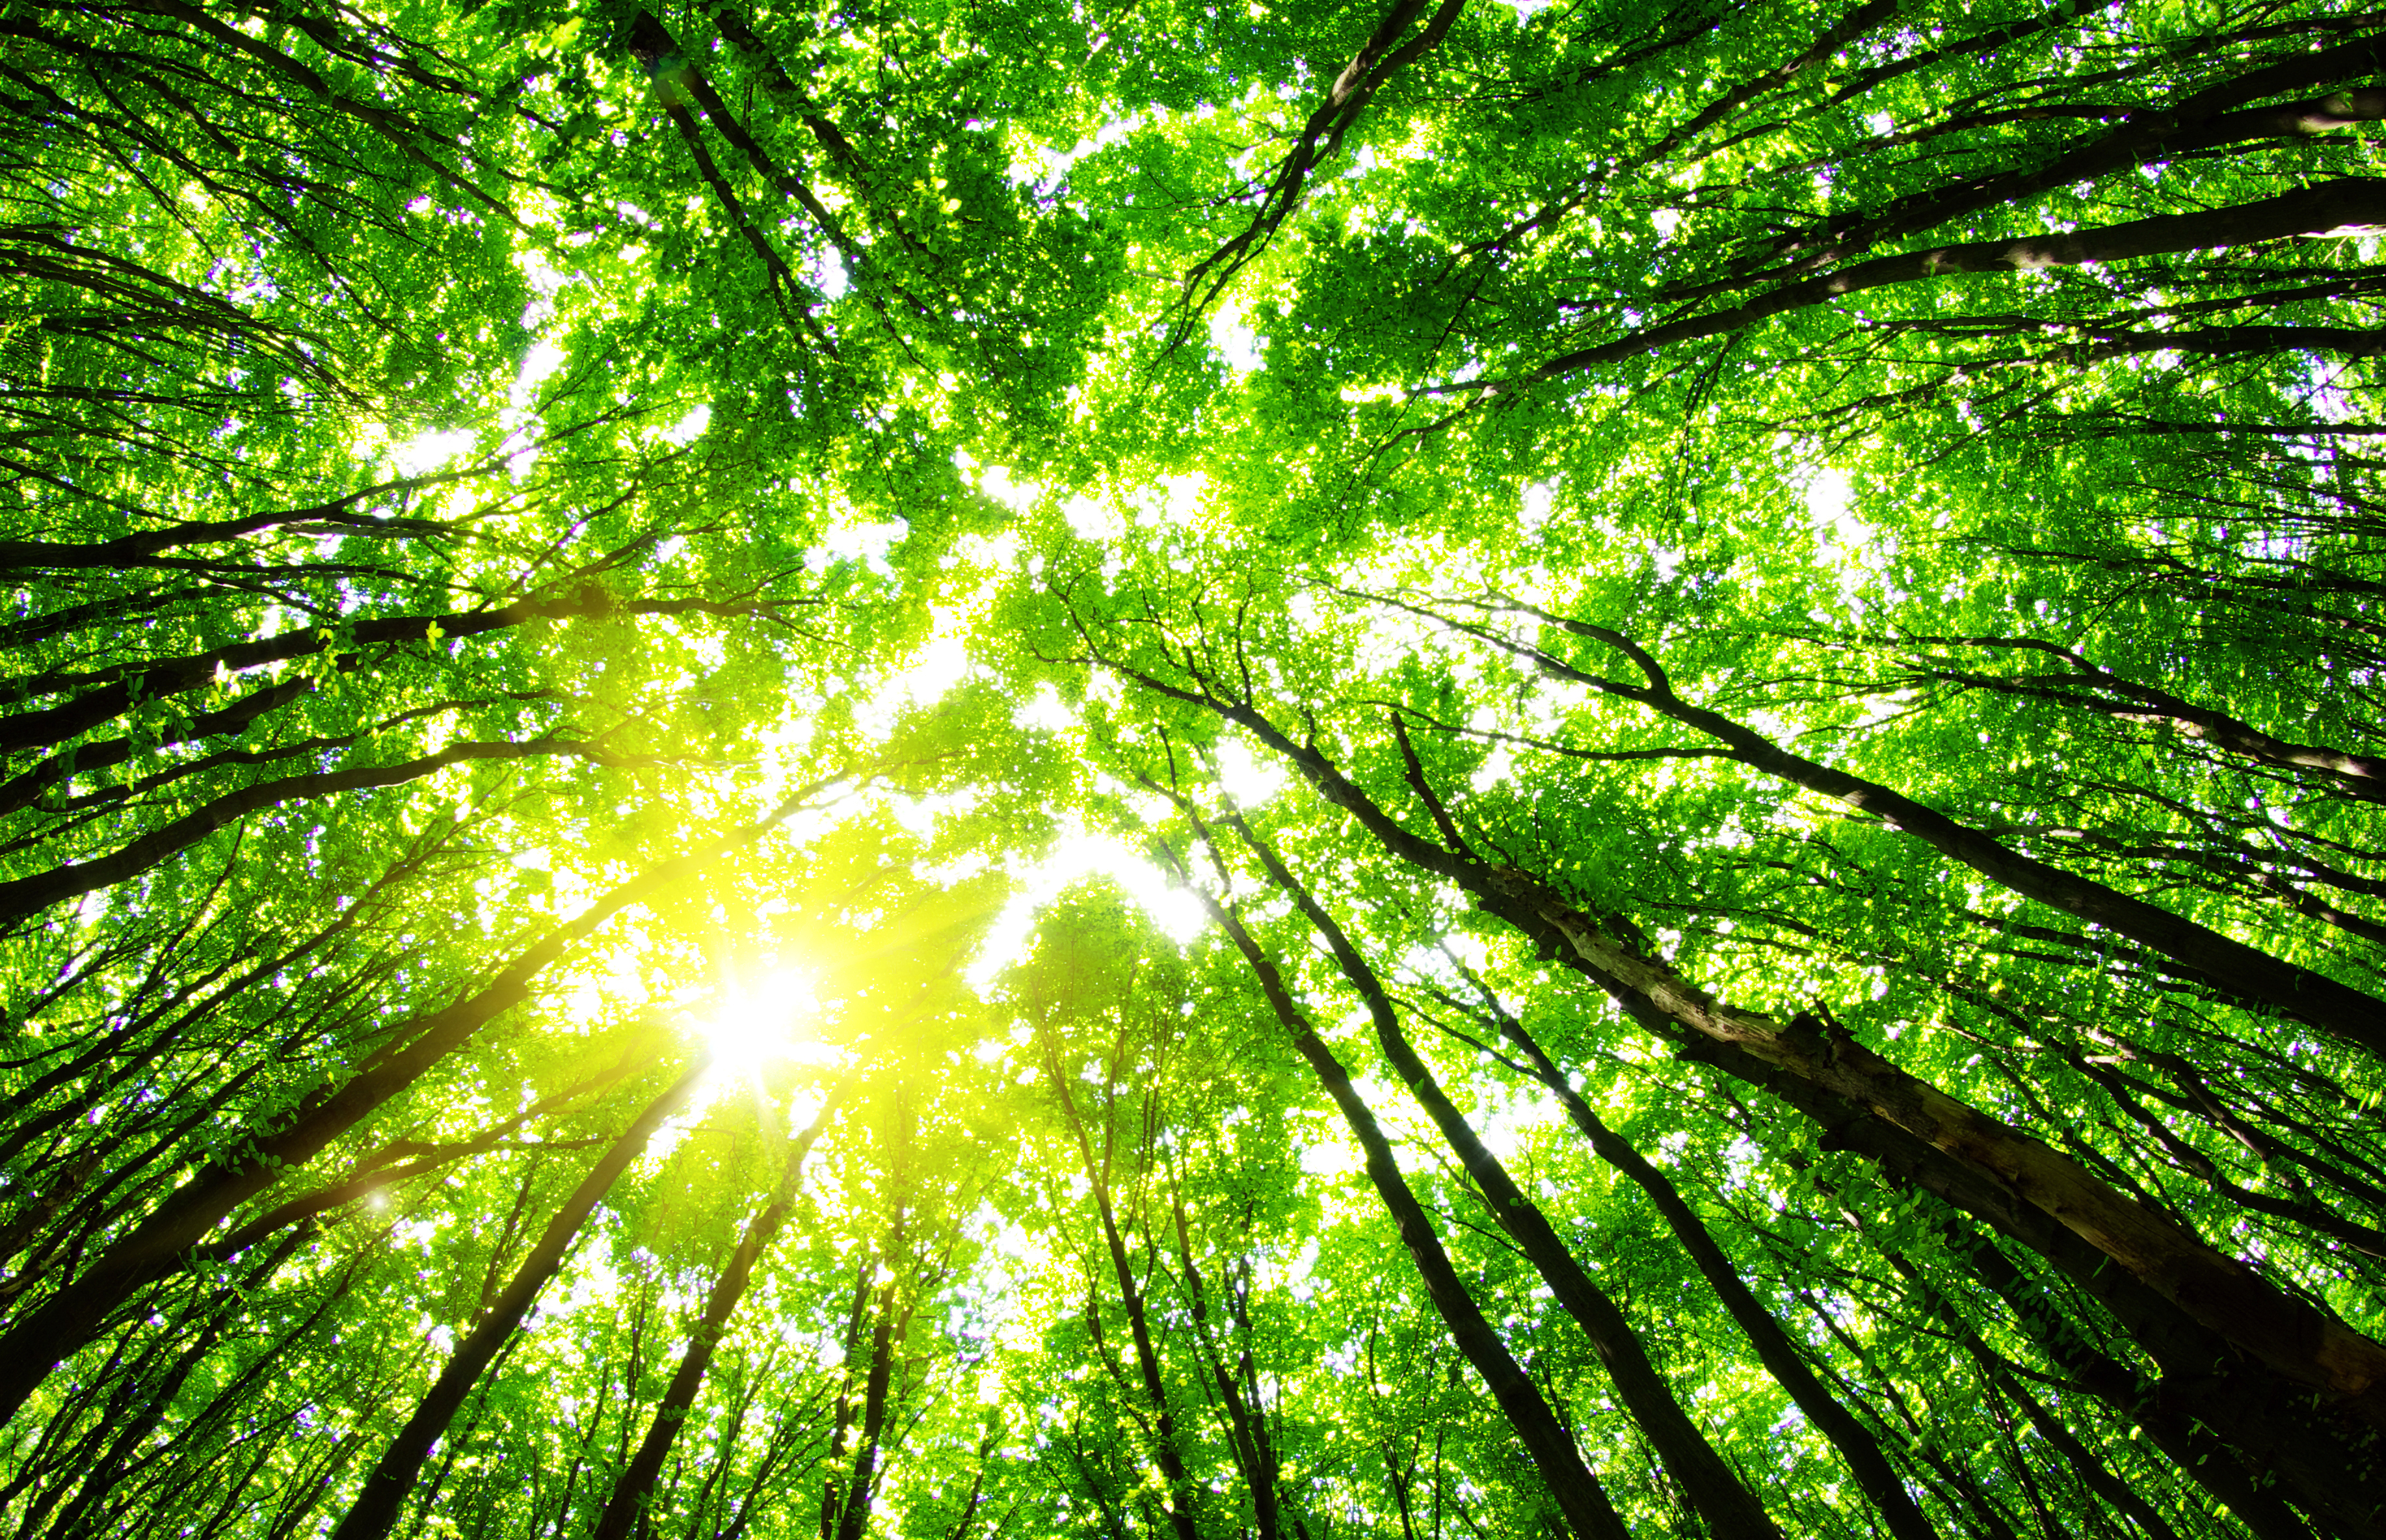 green_forest_background_in_a_sunny_day